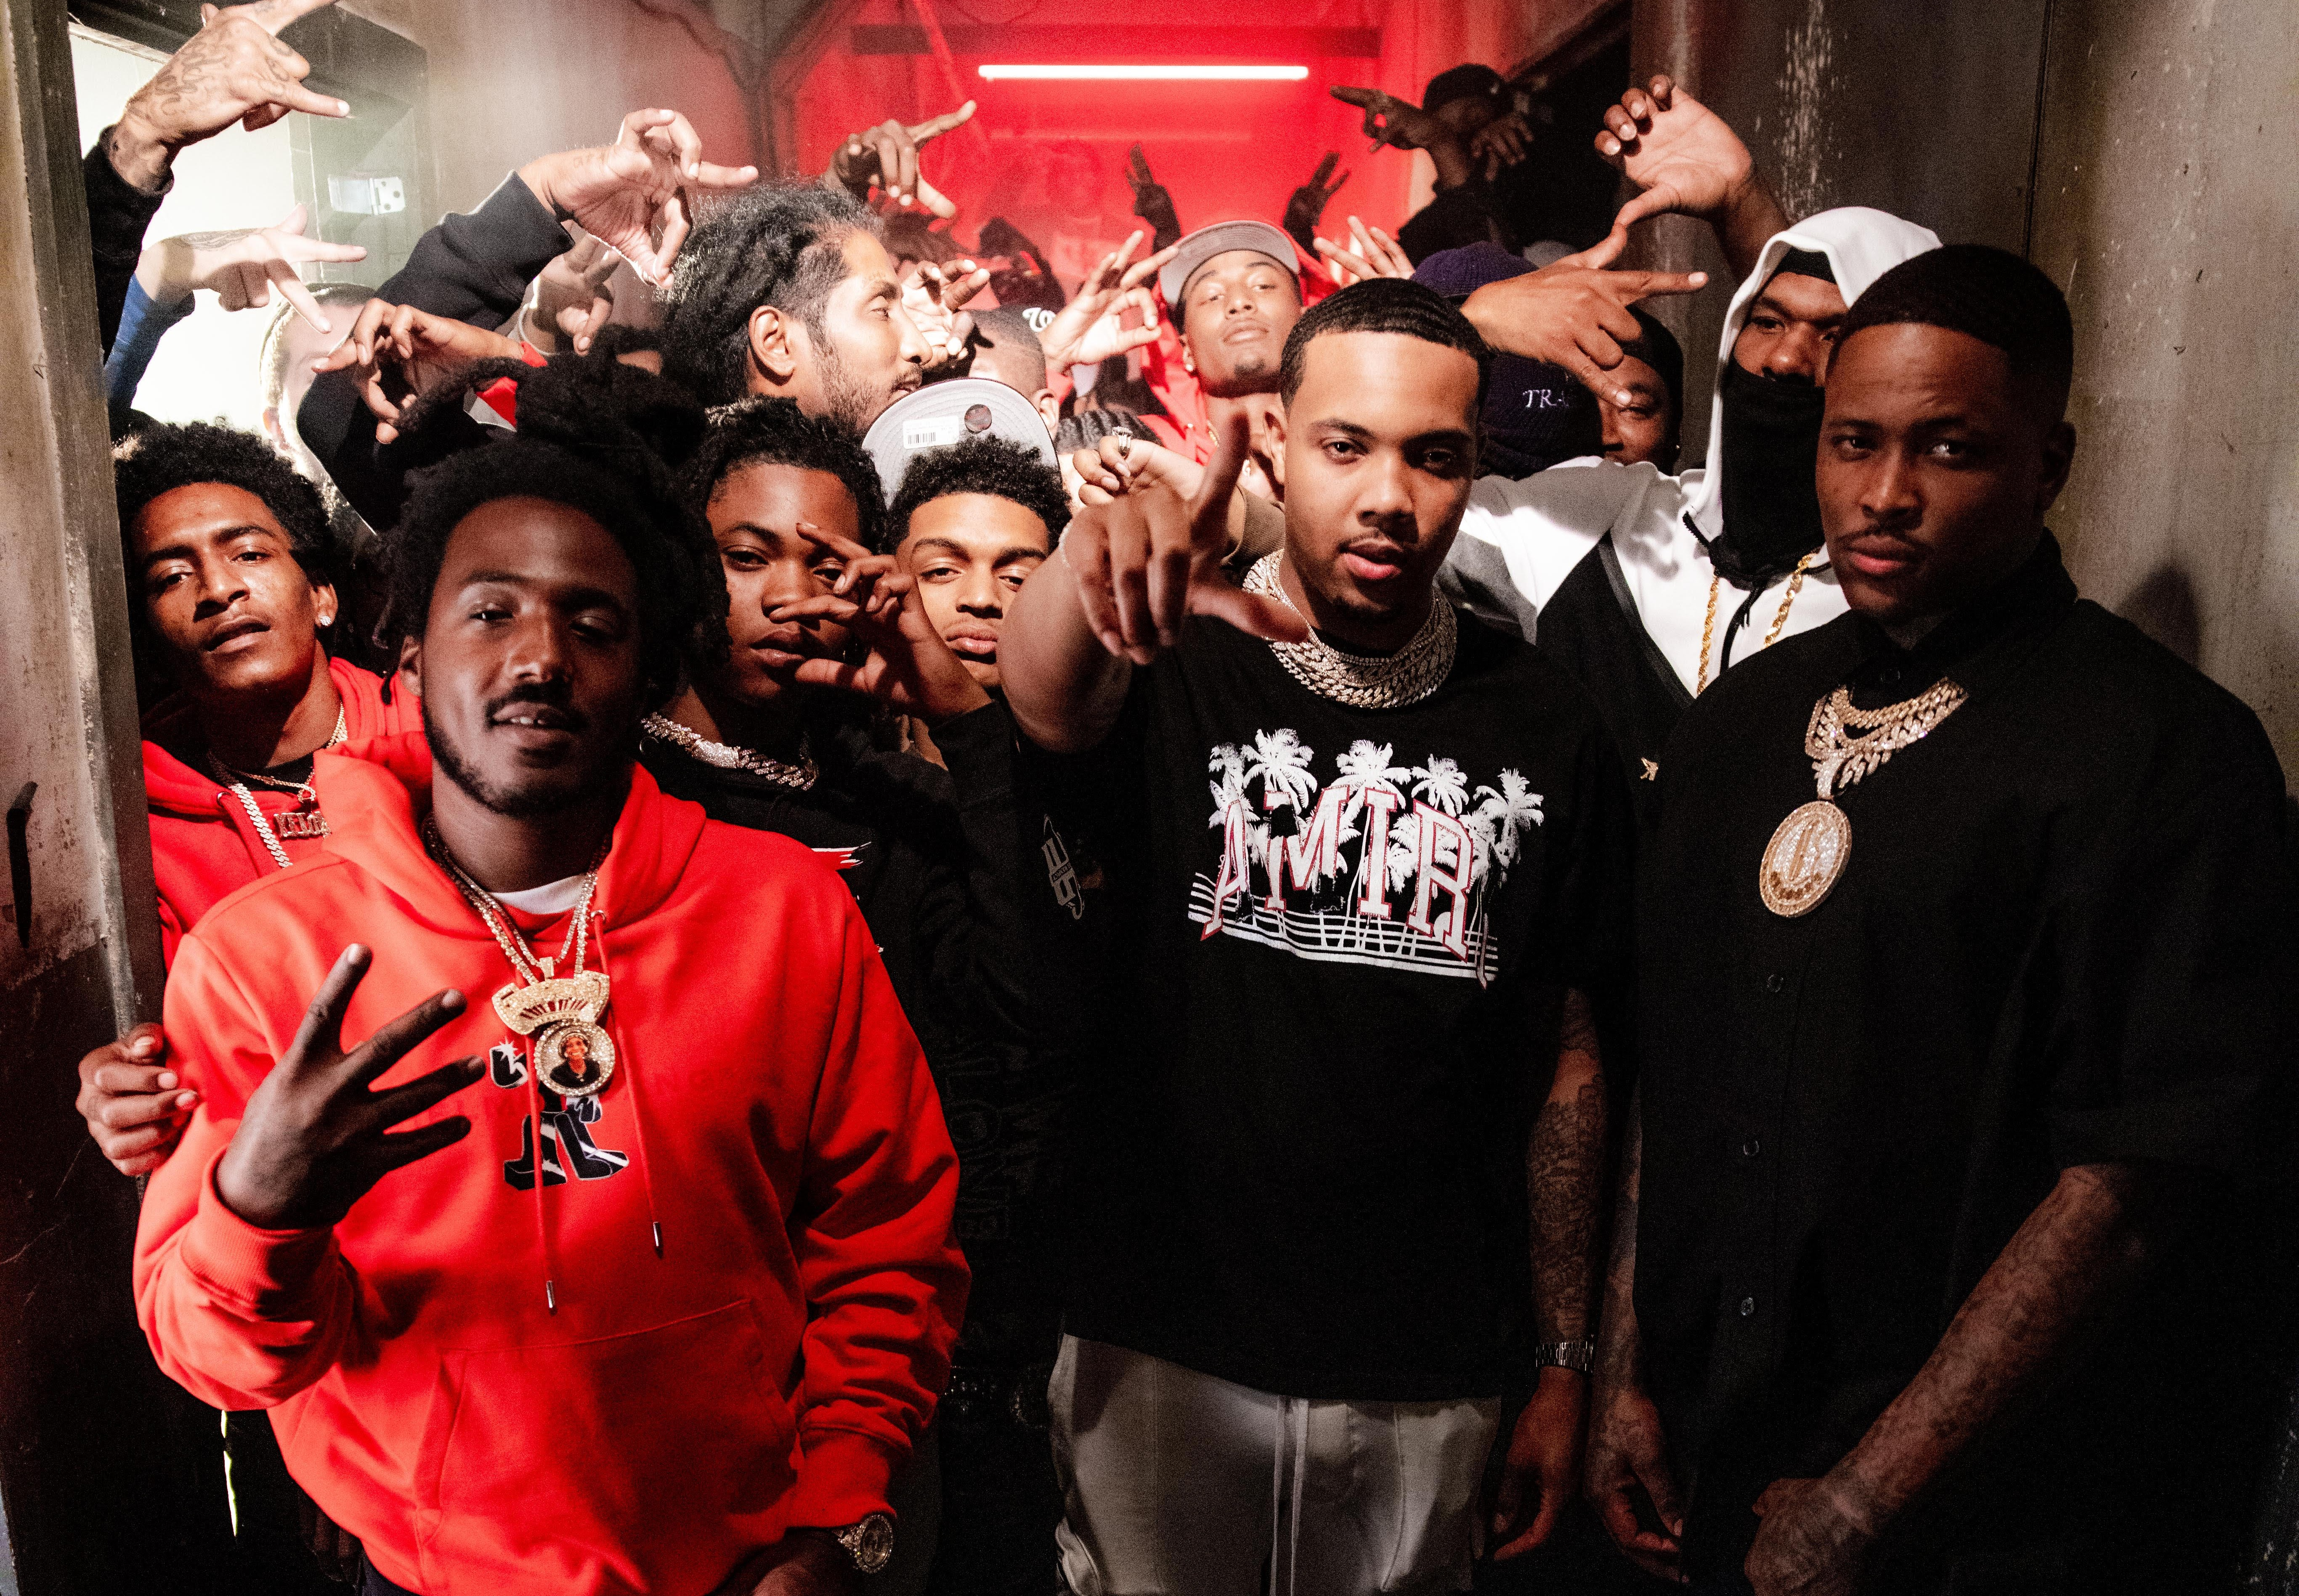 Mozzy, YG, and G Herbo